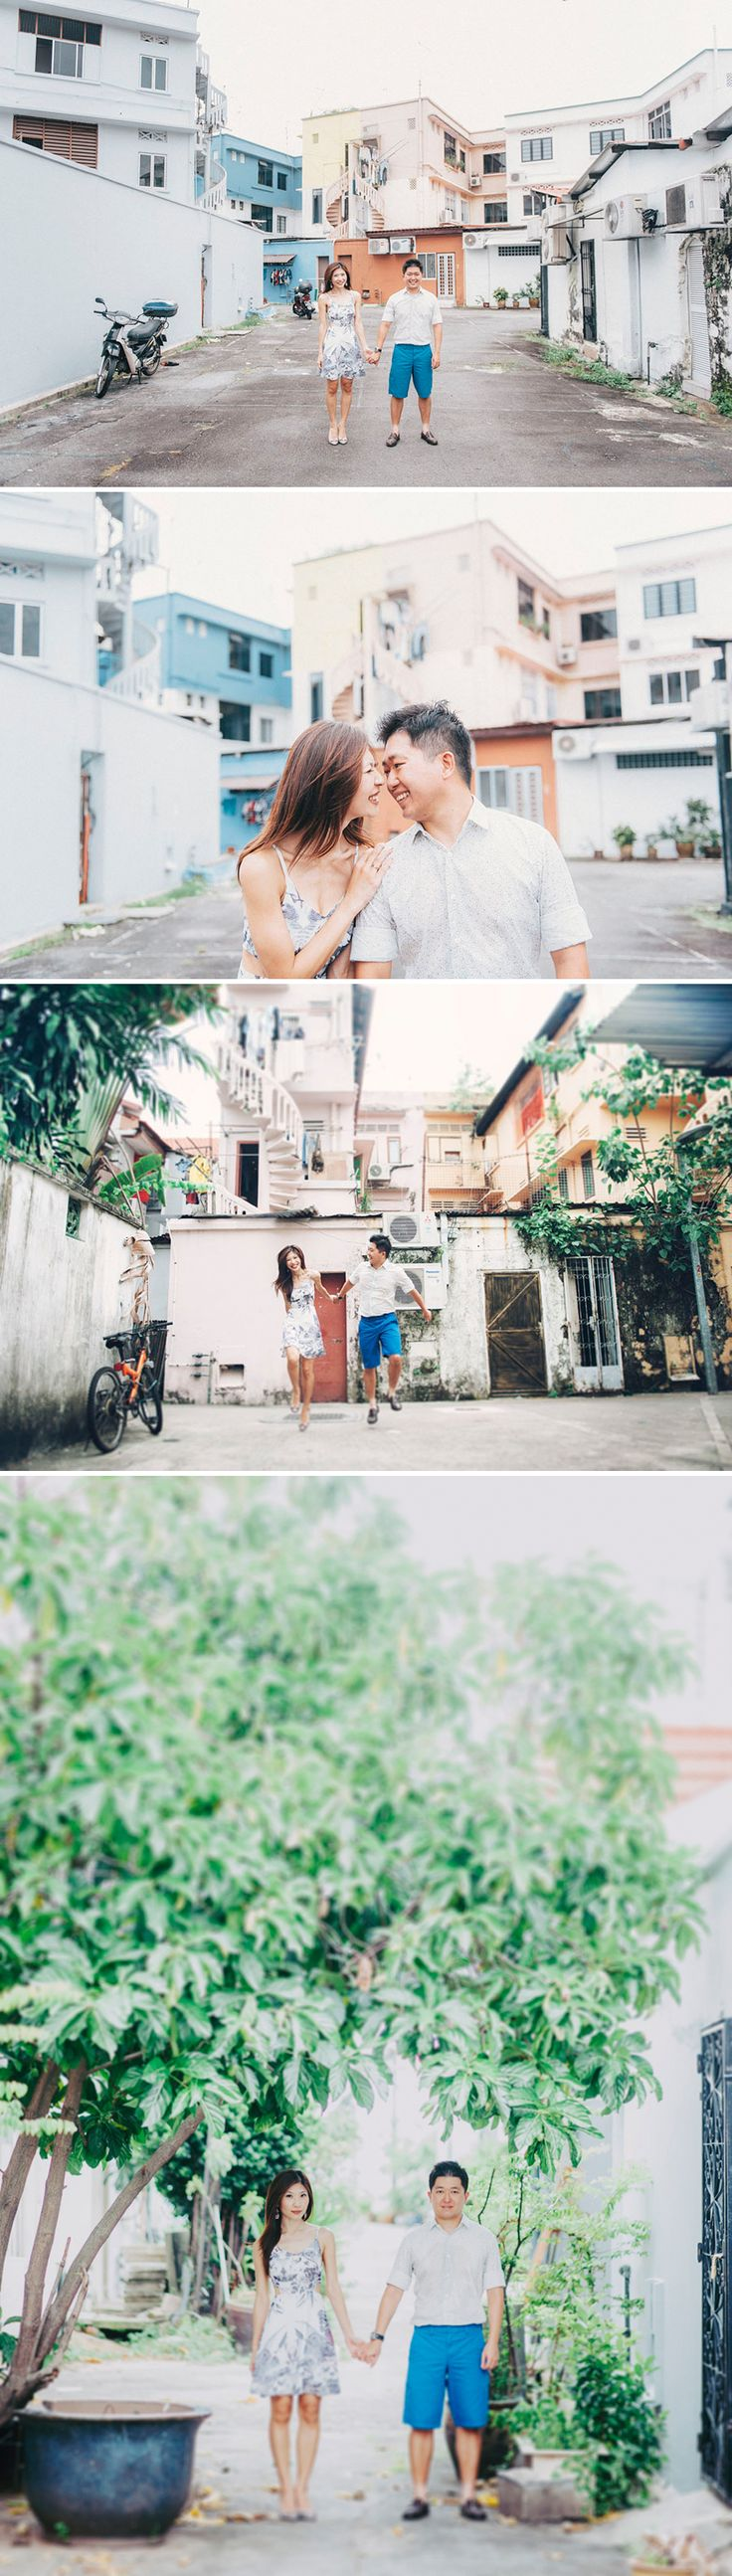 Joo Chiat (back alleys) // Secret Shooting Spots of Photographers in Singapore - Part 1